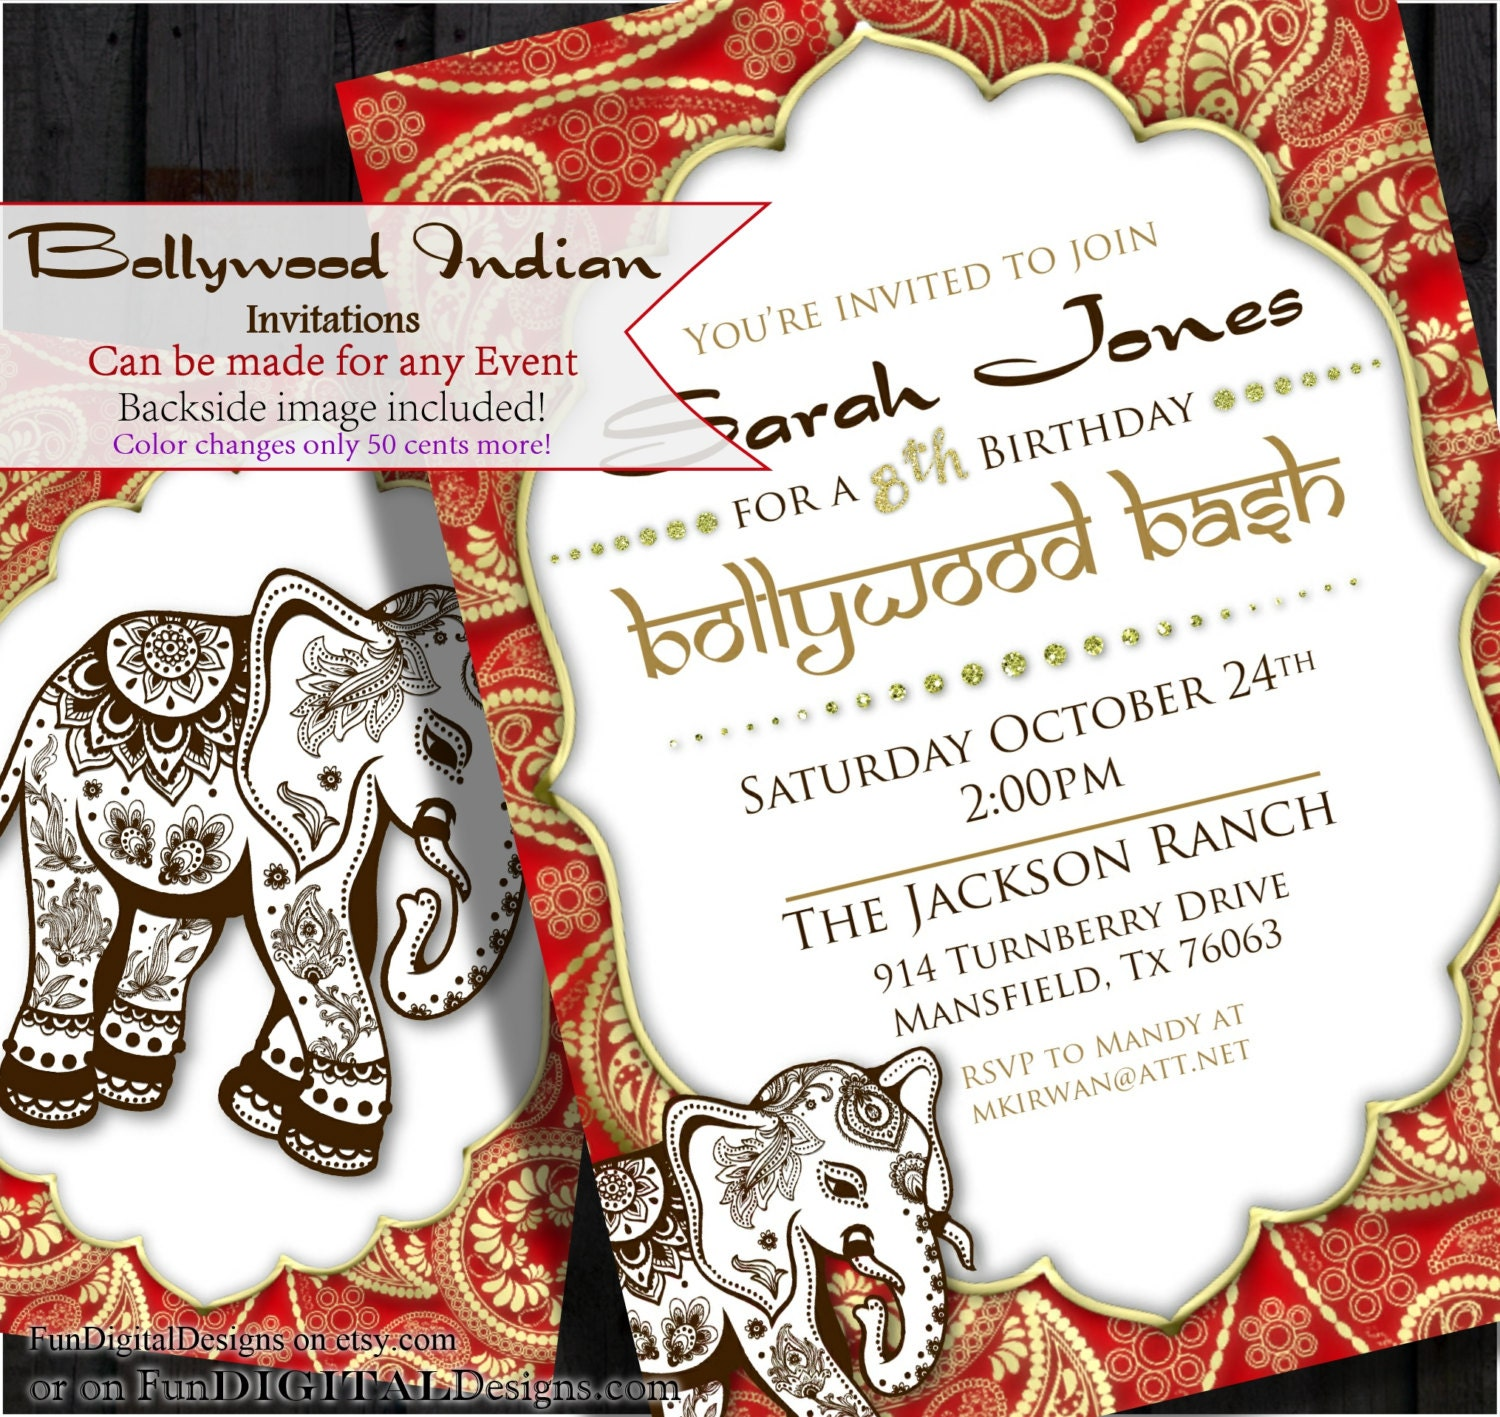 Bollywood Invitation Indian Invite Middle Eastern – Bollywood Birthday Card